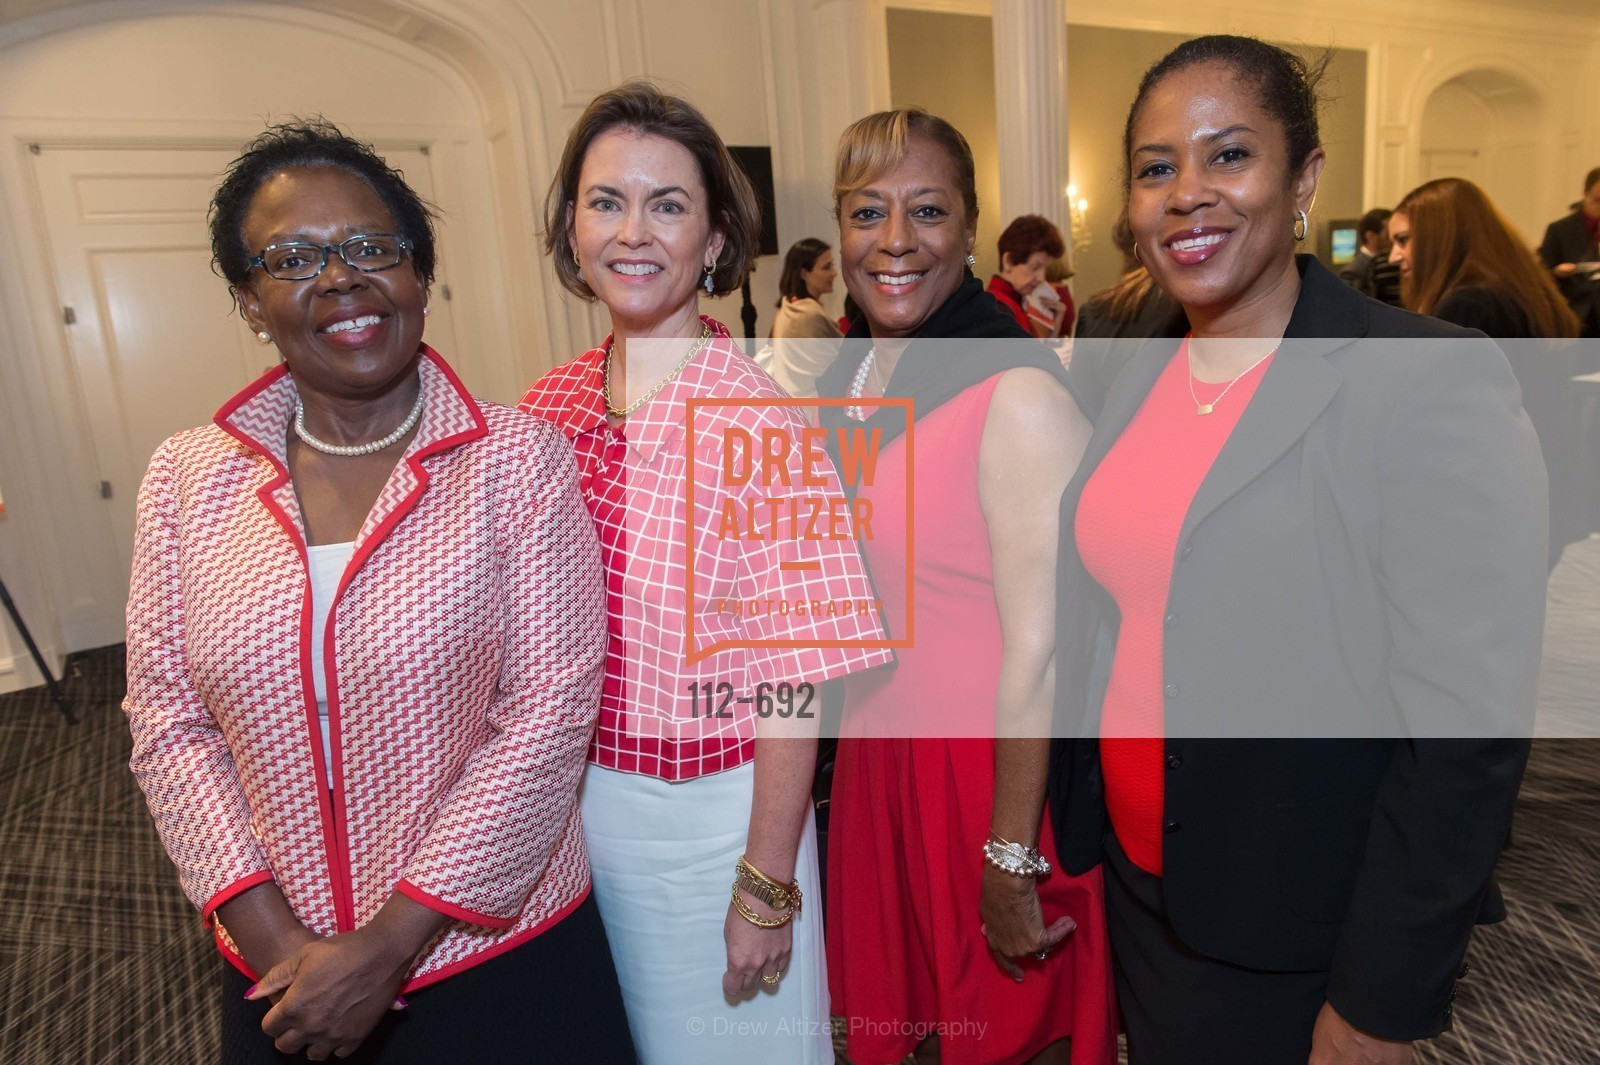 Audrey Drichi, Mary Francis, Laraine Daye, Josetta James, 2015 GoRed for Women Luncheon, US, May 2nd, 2015,Drew Altizer, Drew Altizer Photography, full-service agency, private events, San Francisco photographer, photographer california